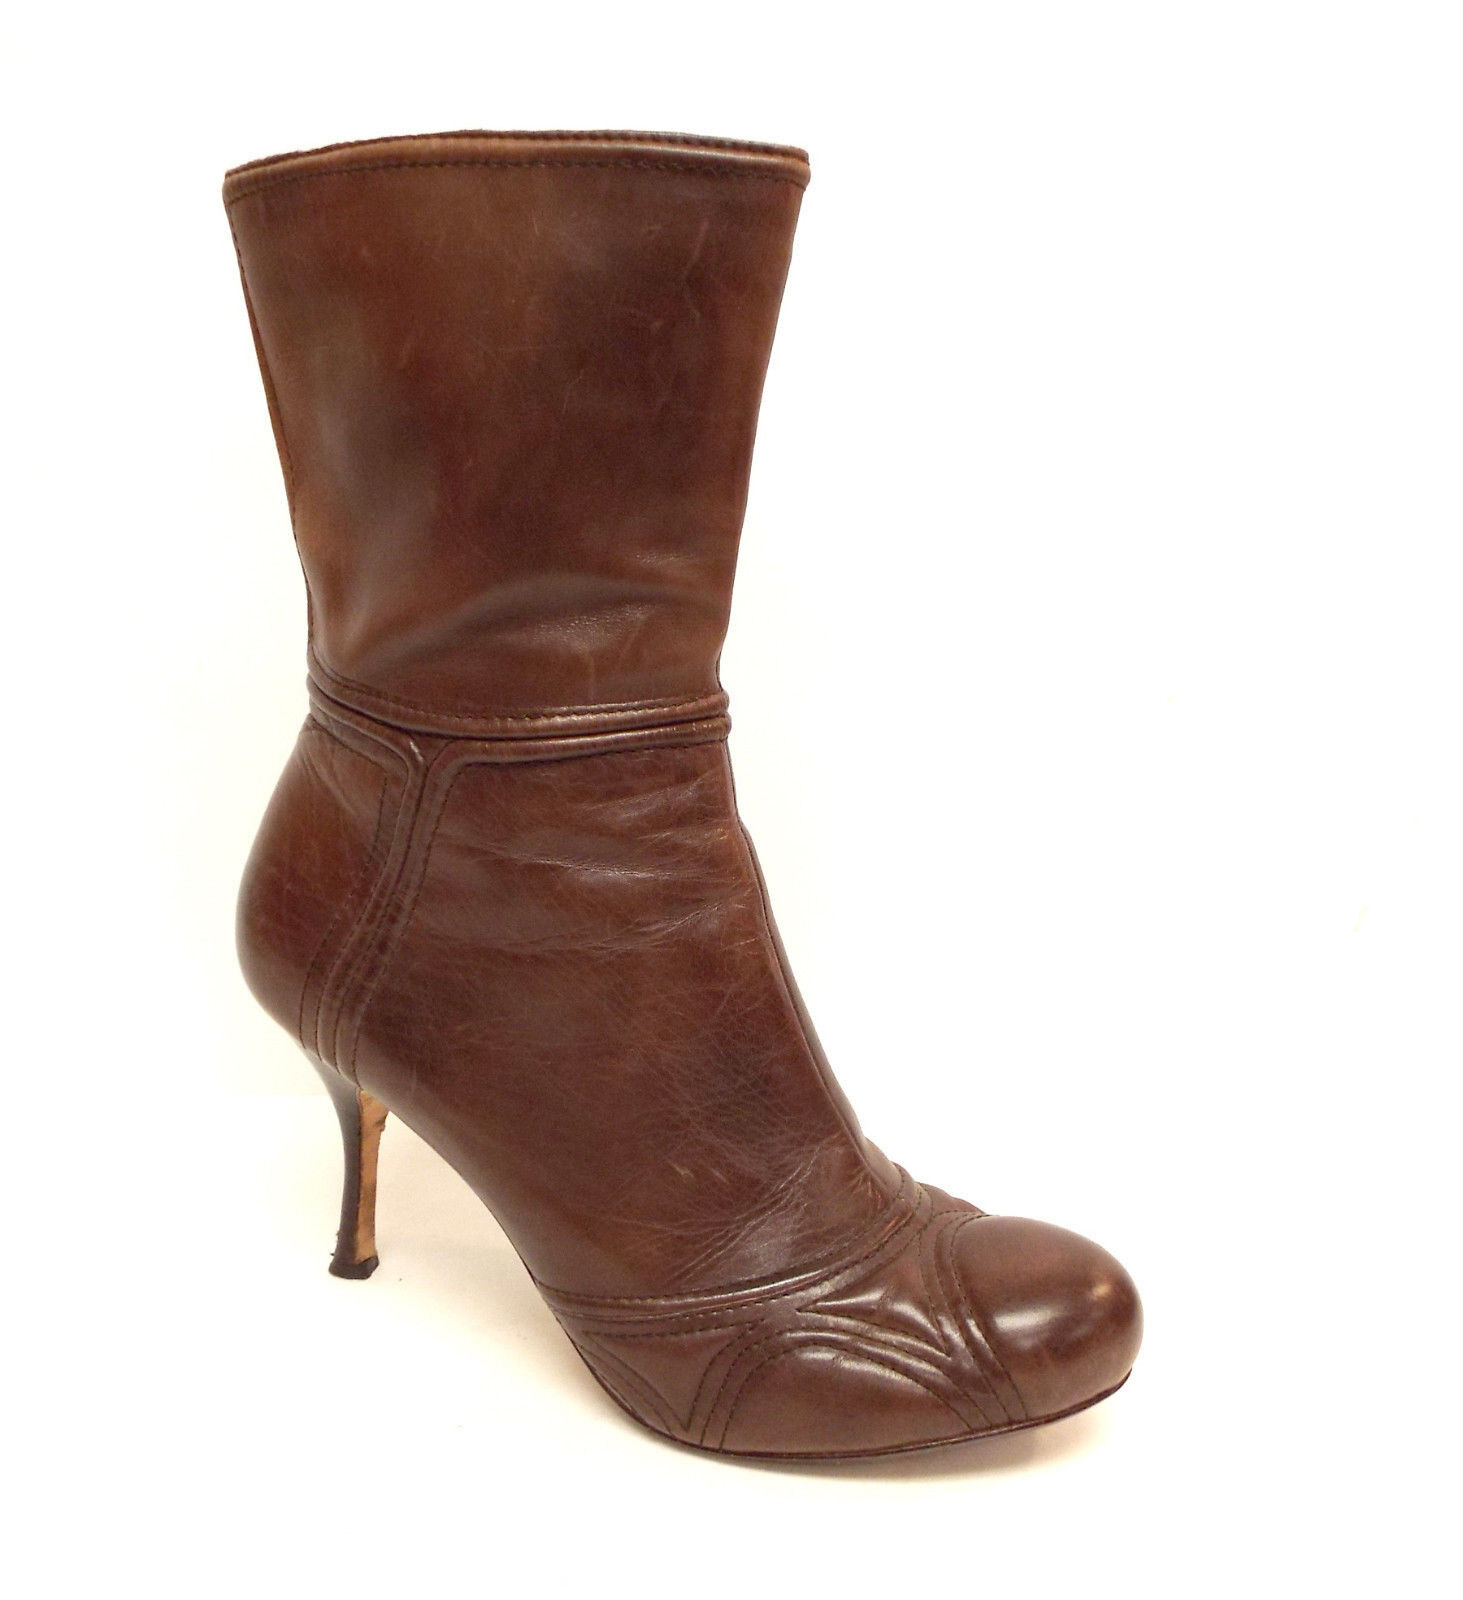 MAX STUDIO Size 8.5 Brown Leather Round Toe Ankle Boots 8 1/2